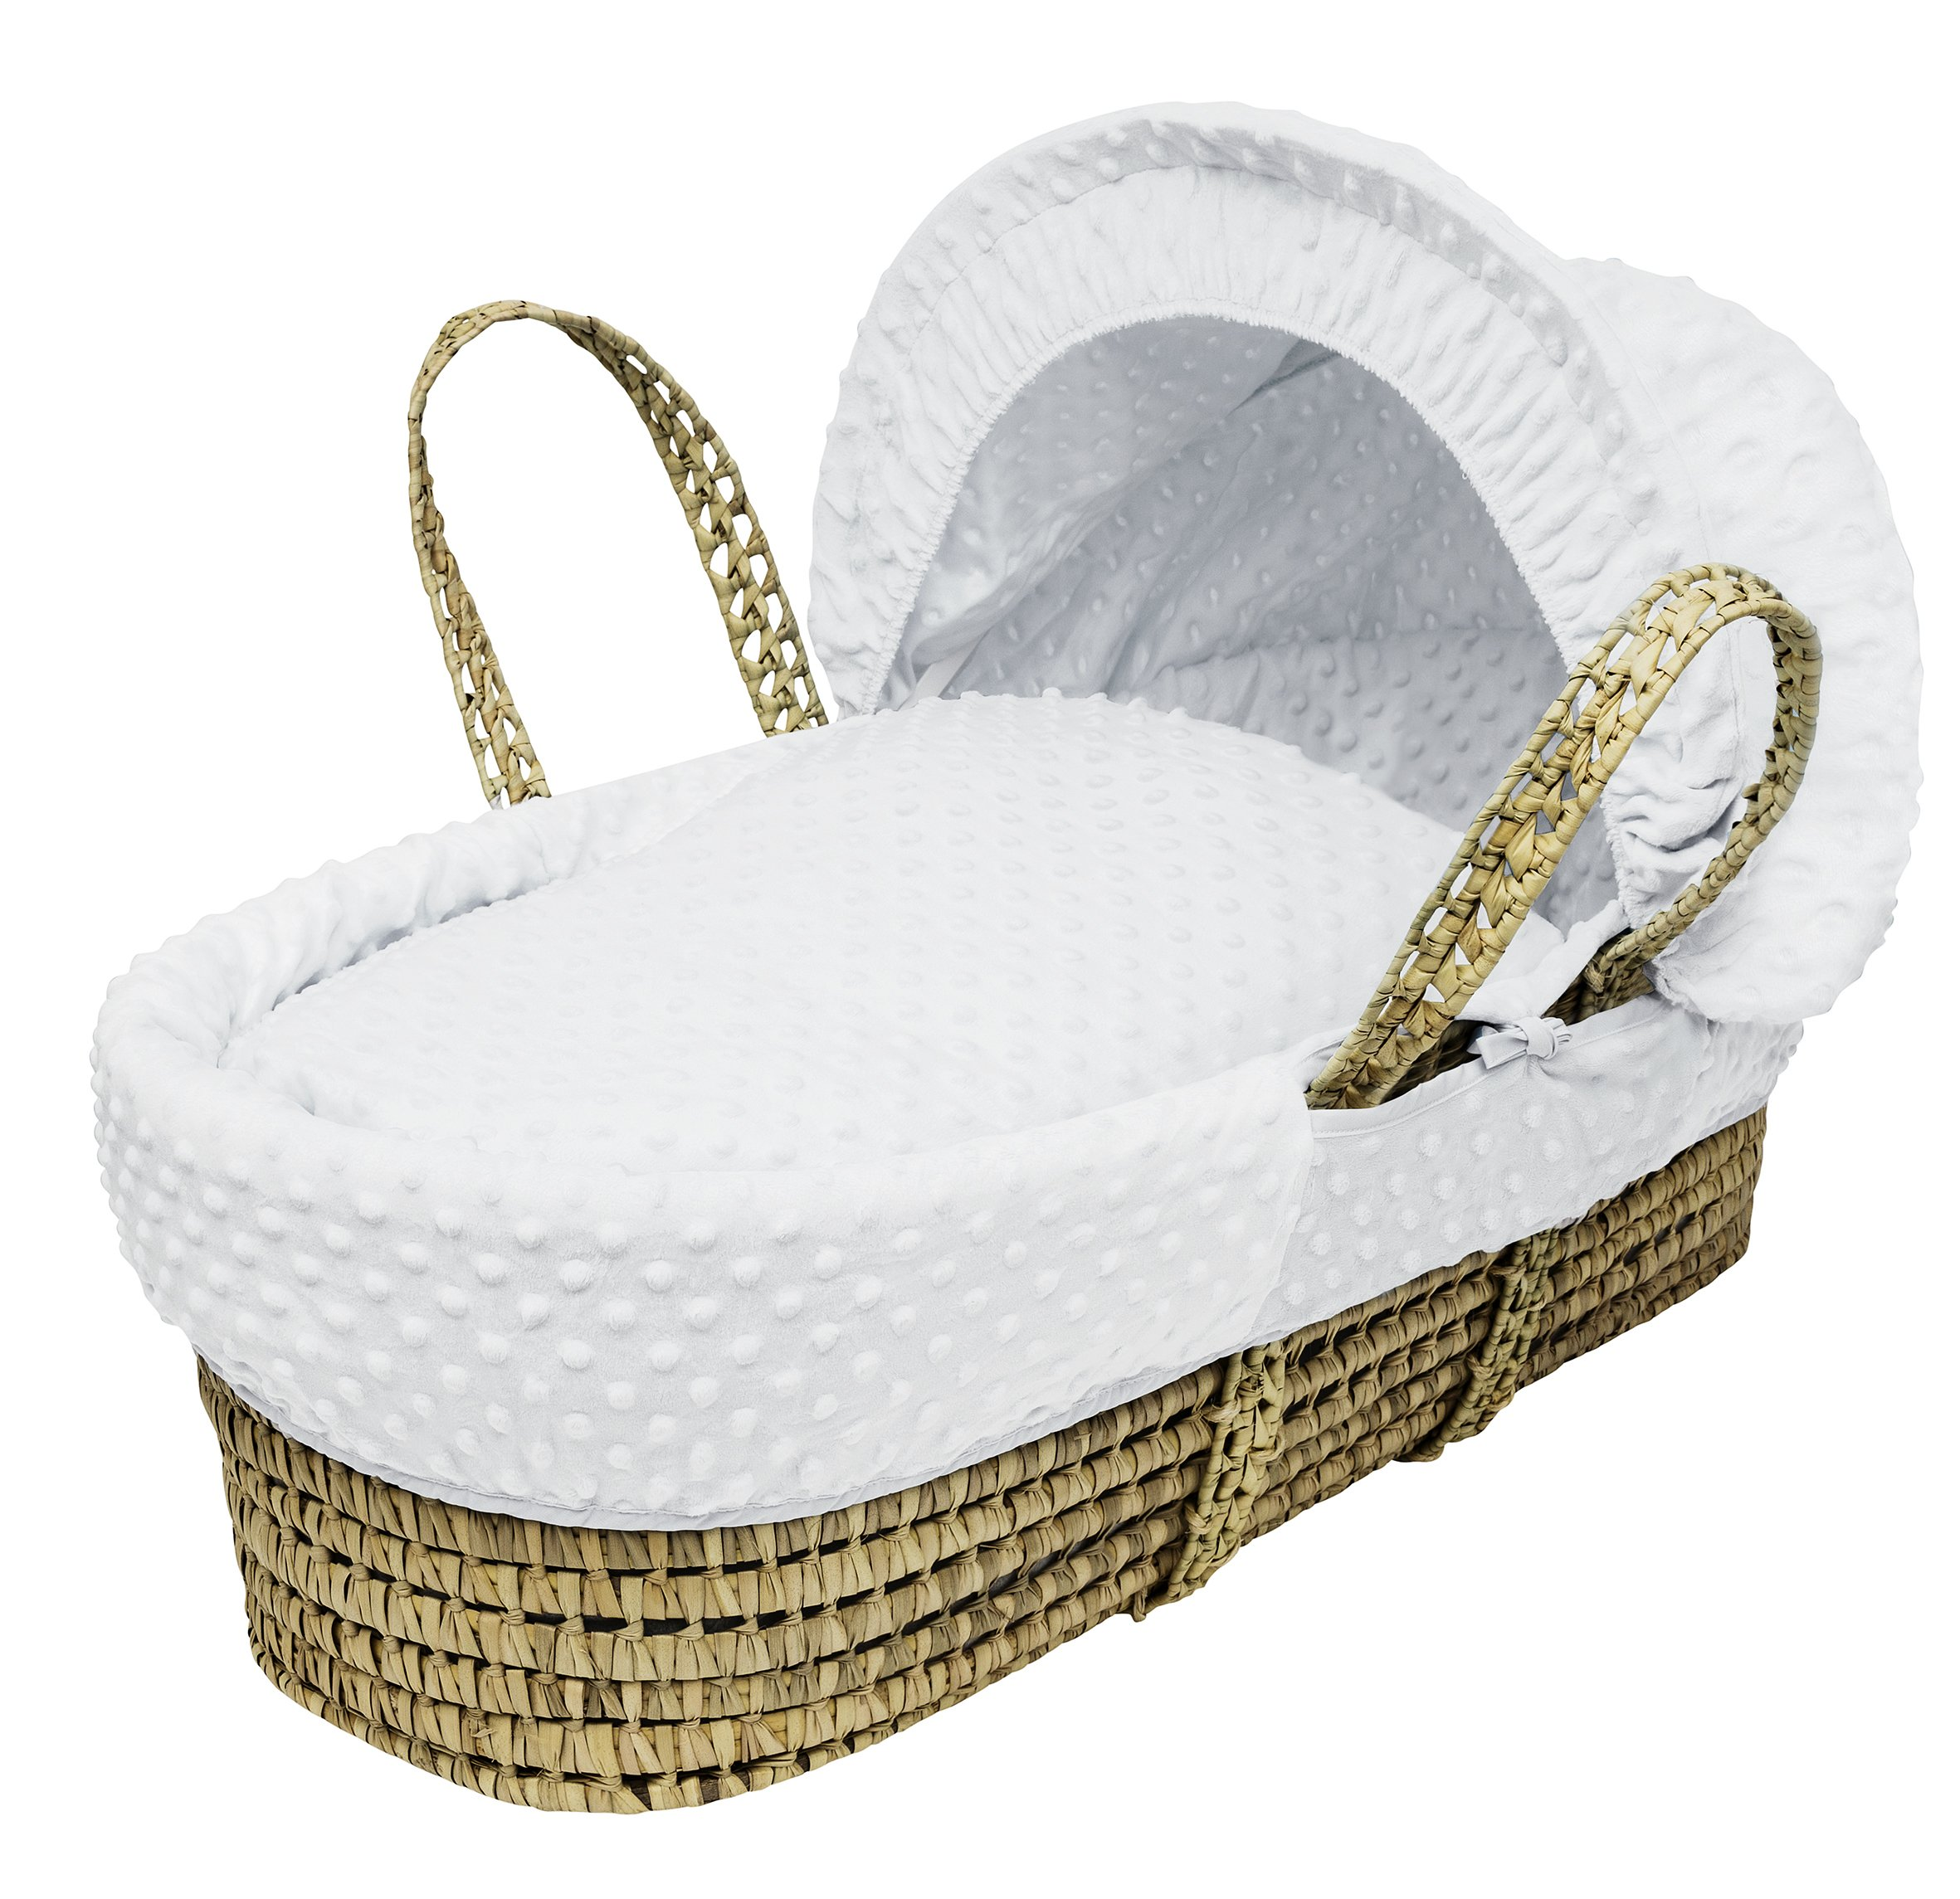 White Dimple Moses Basket Dressings only(Basket not included) Elegant Baby Dressings For Moses Baskets Includes Padding,Quilt, Liner,Fabric Hood Basket and Mattress and Hood bars are NOT included 1